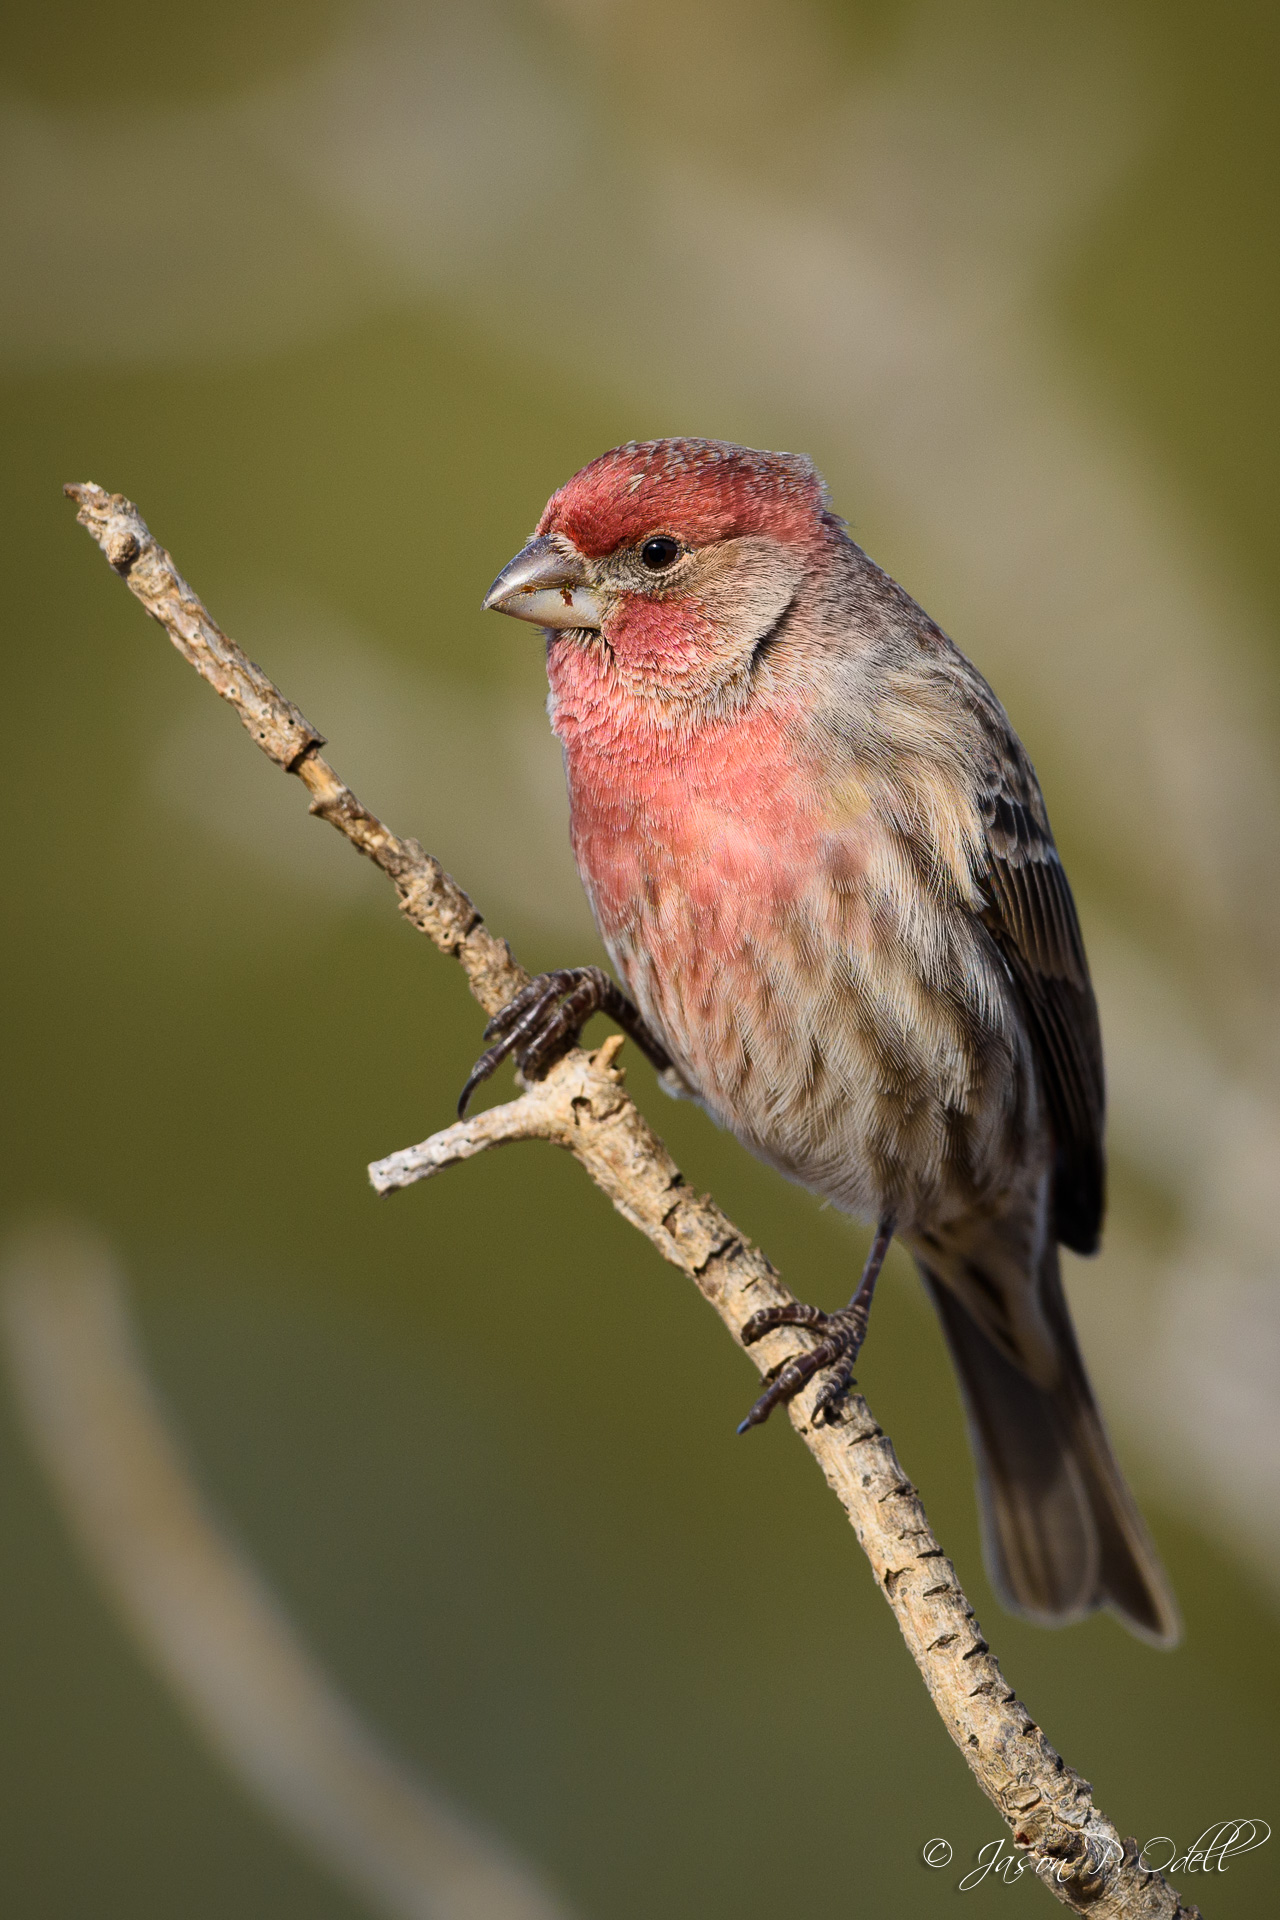 Male house finch, Fountain Colorado. Nikon 500mm f/4 AFS G VR lens and Nikon D810. 1/1600s @ f/4.5, ISO 360.